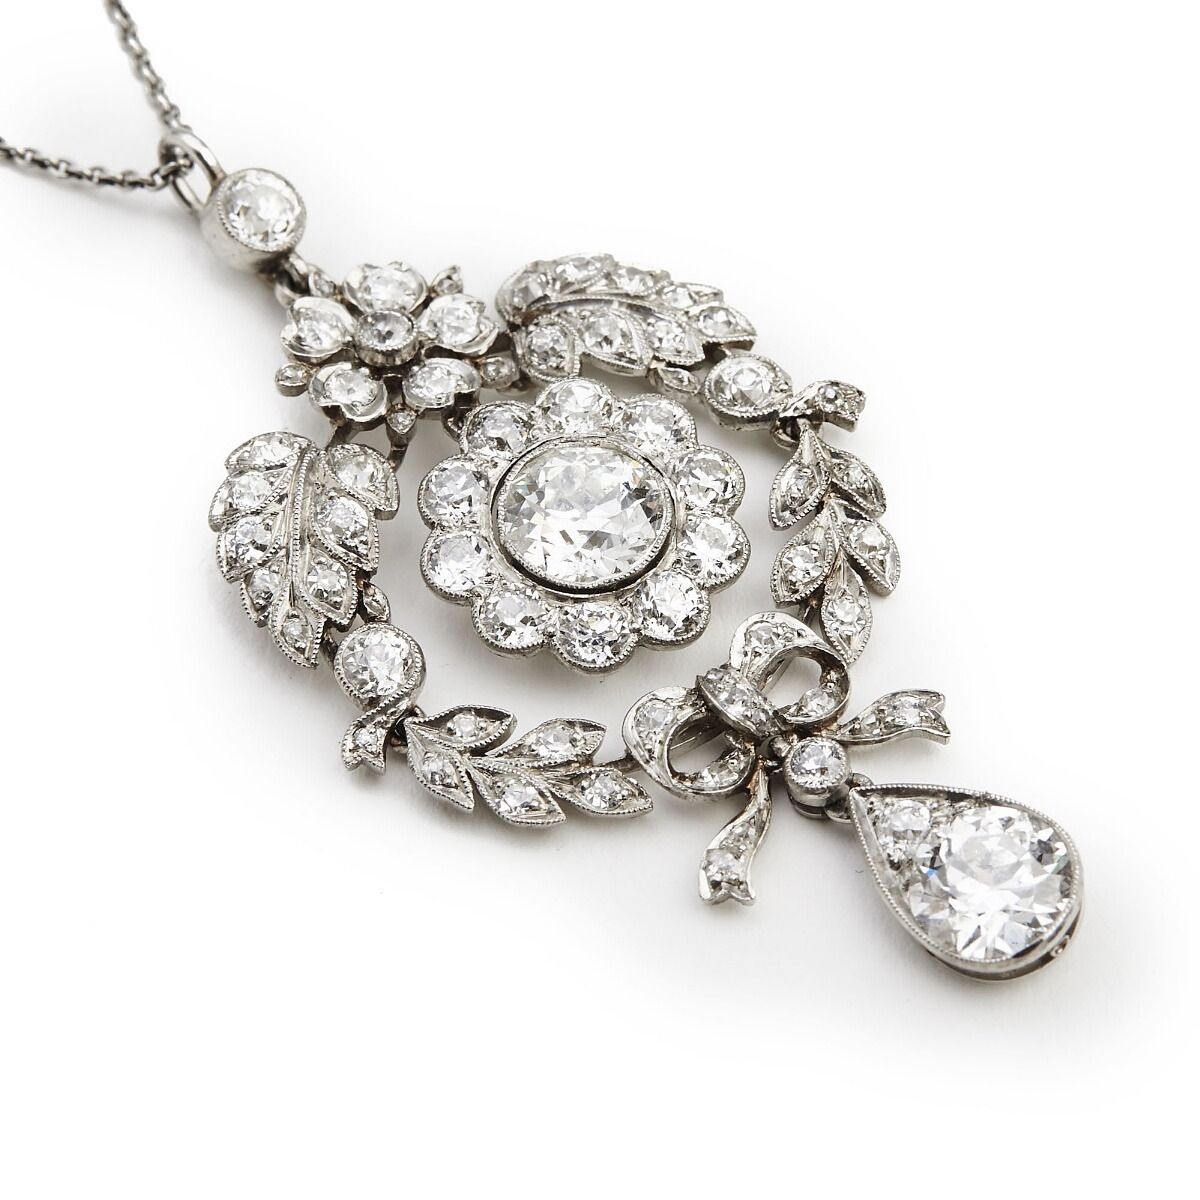 A belle epoque diamond pendant set with numerous old and singlecut